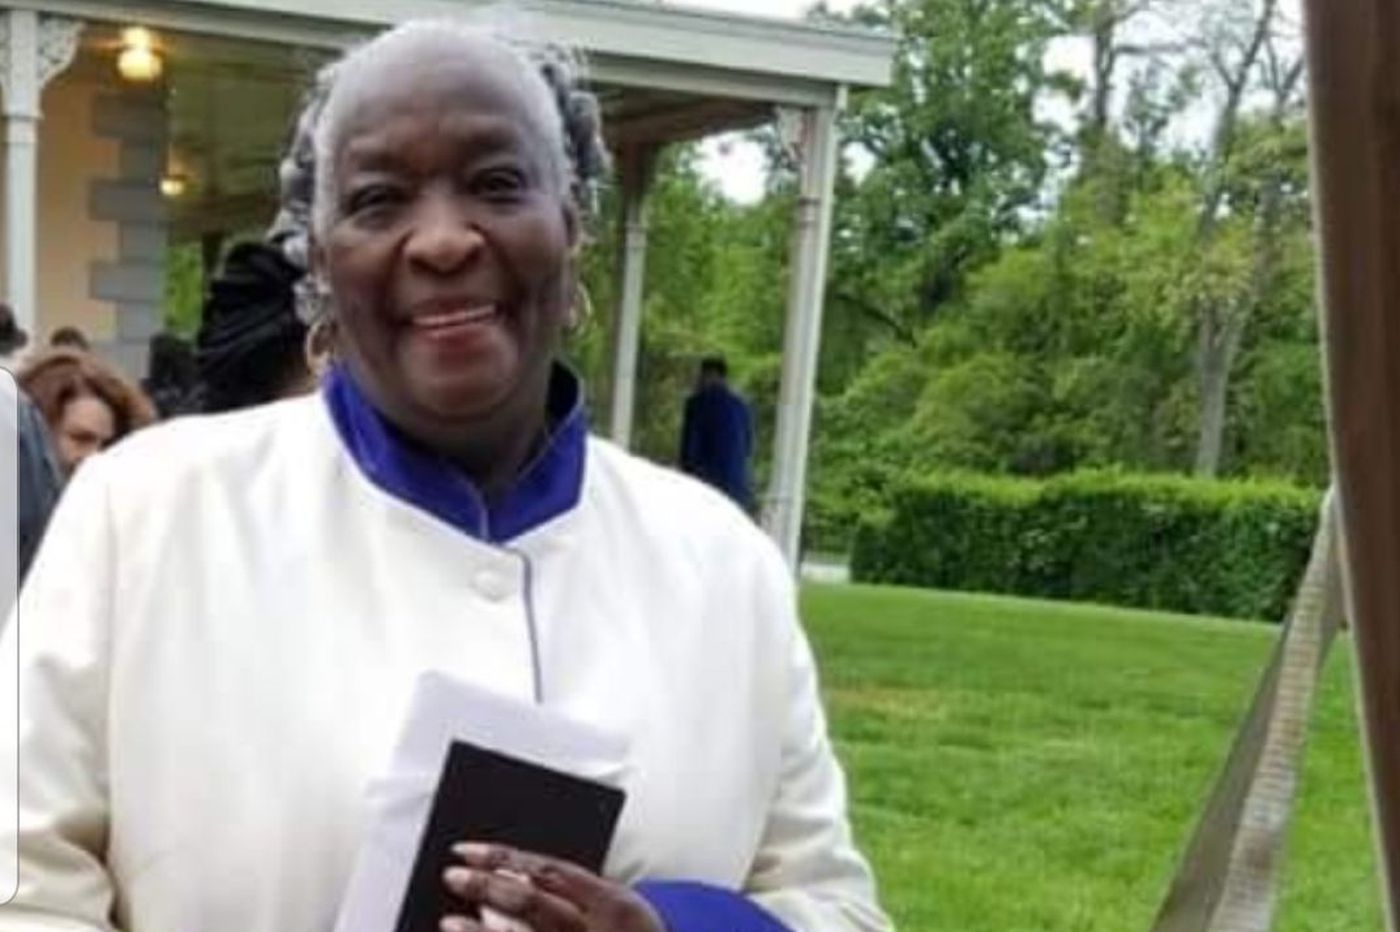 Dolores Scott, 71, was a preacher and teacher to many